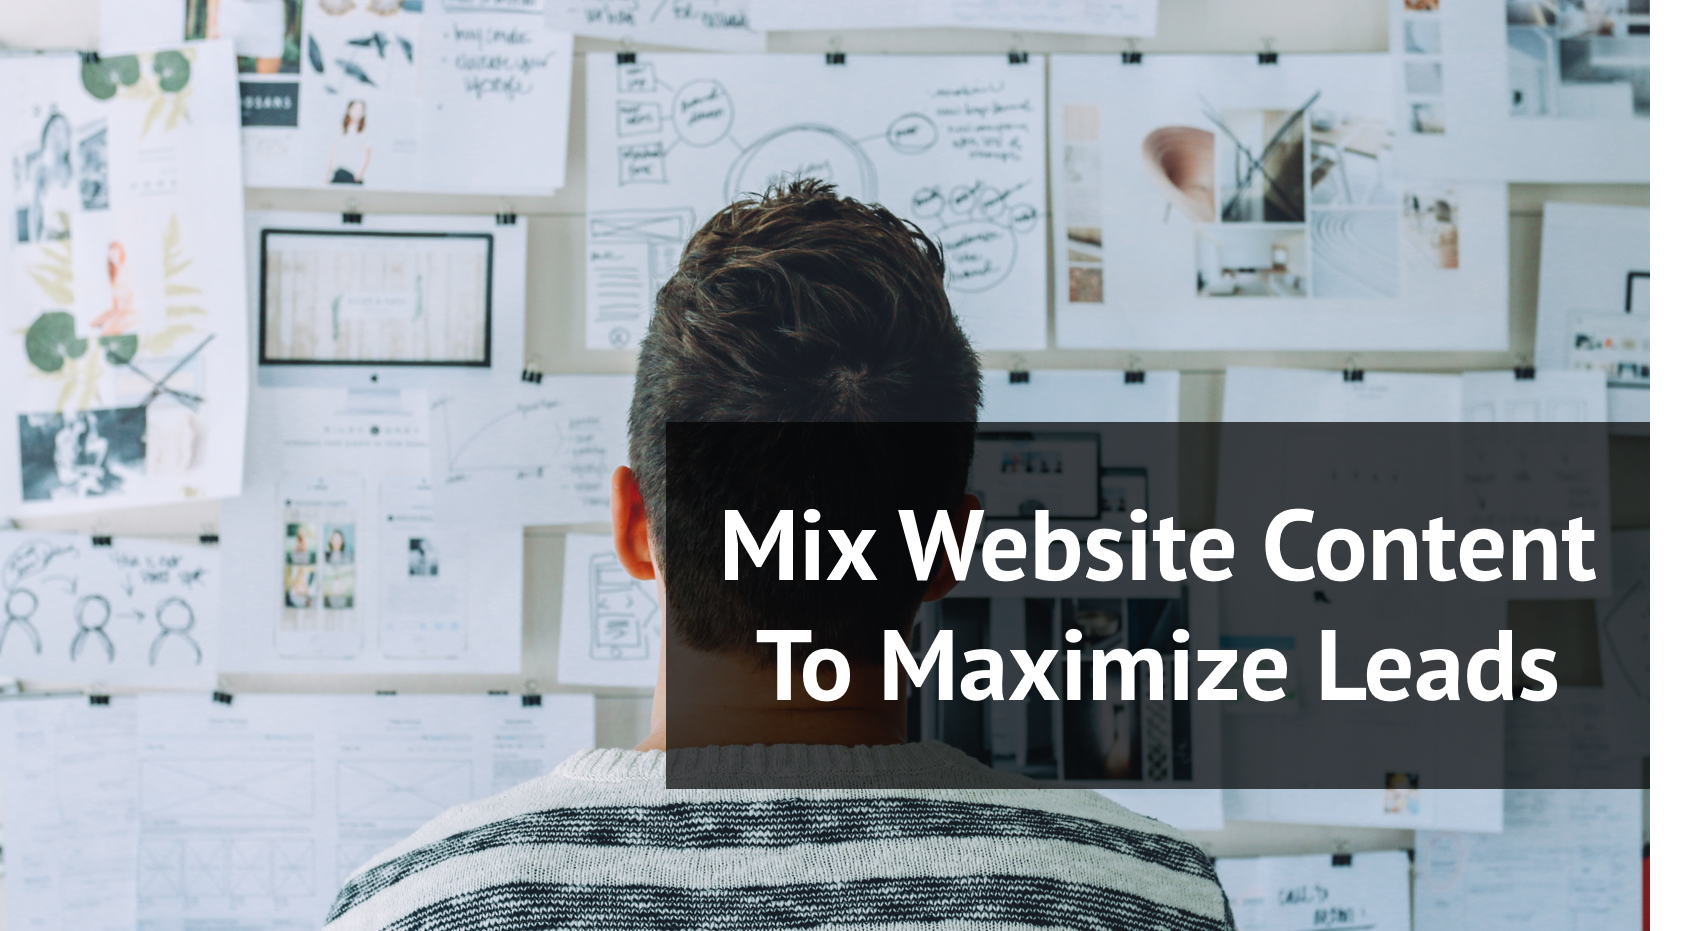 Mix Website Content to Maximize Leads